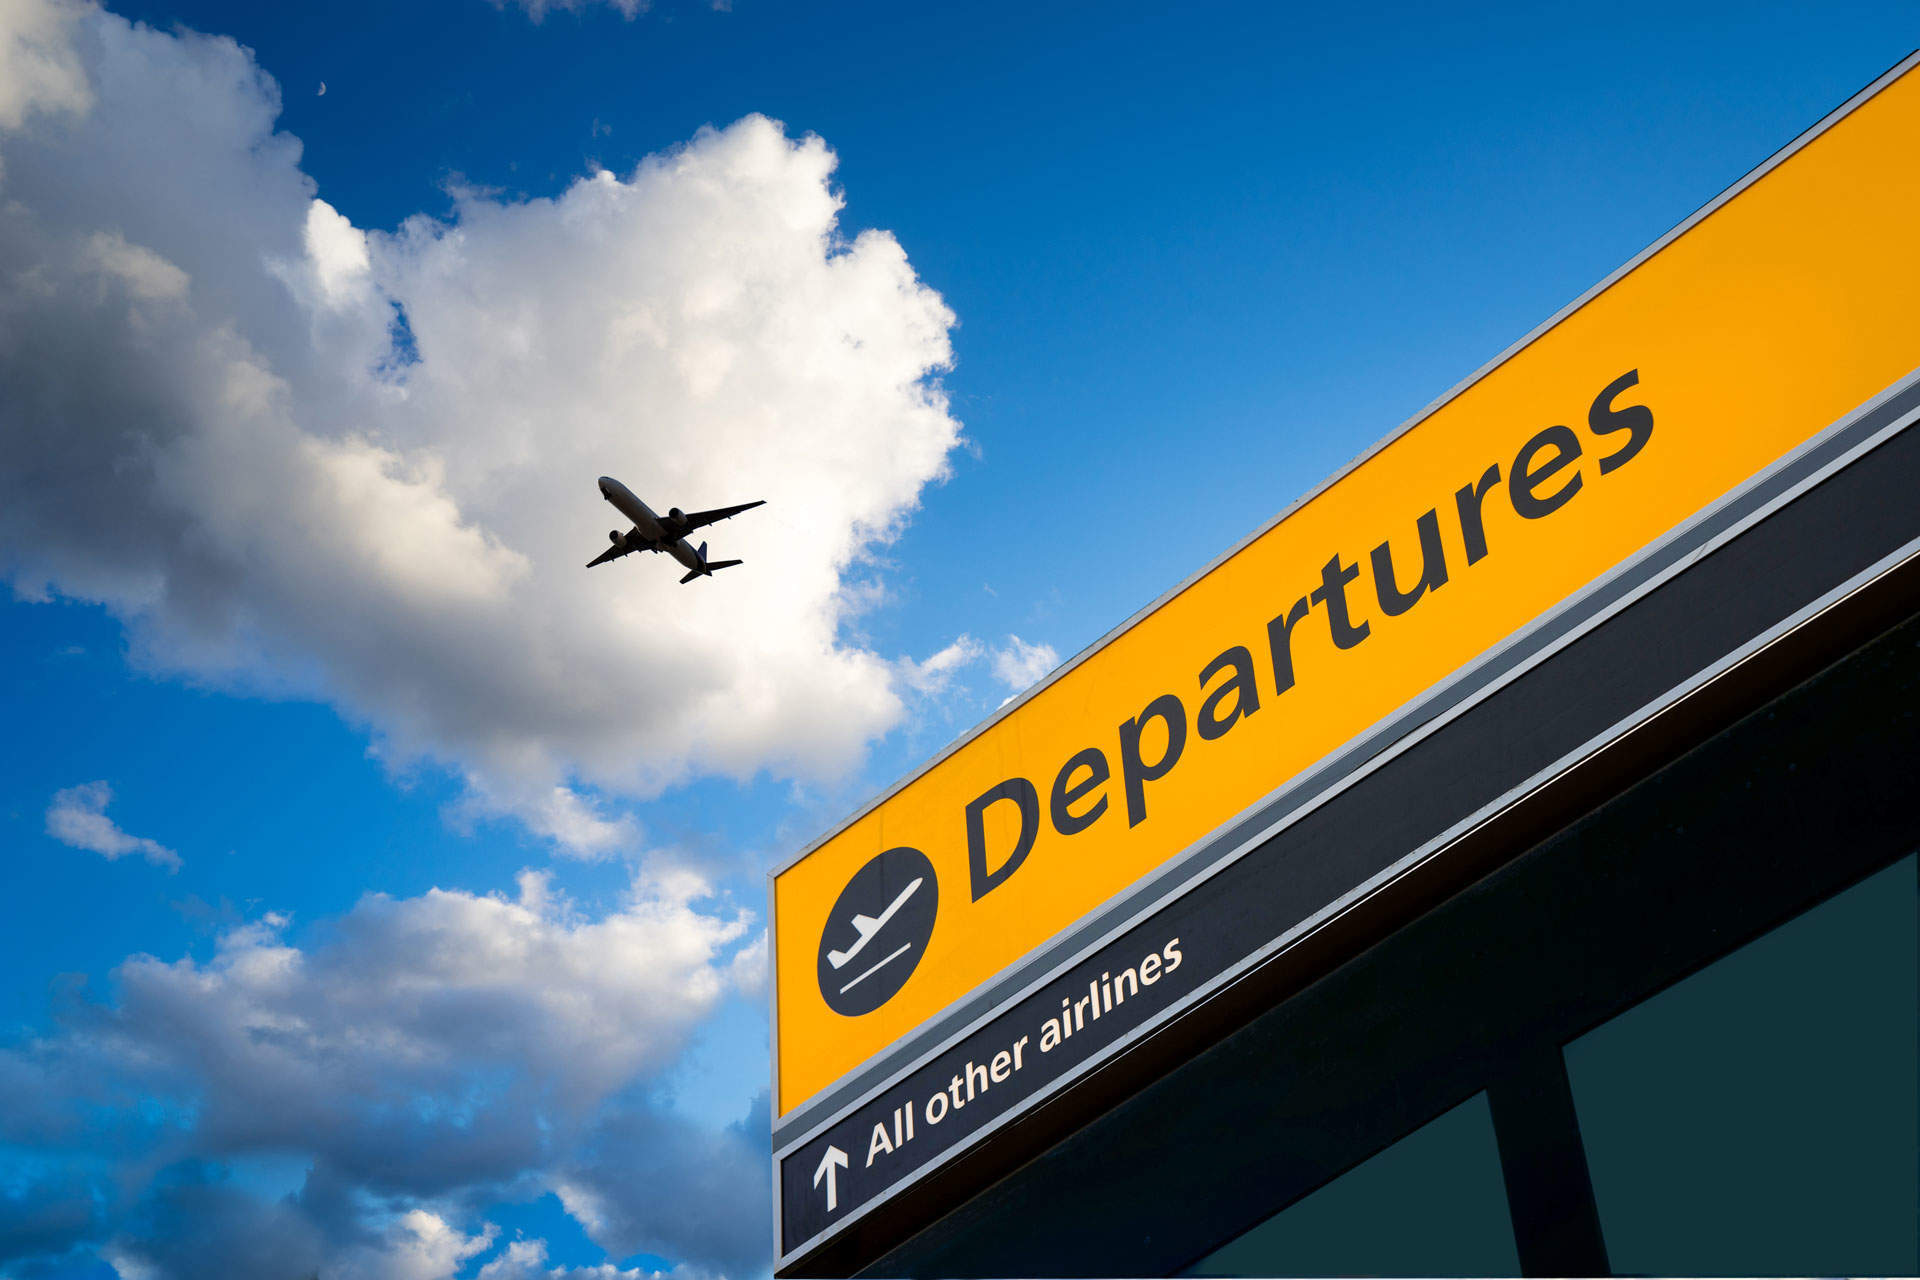 ICO issues Heathrow fine over loss of personal data USB